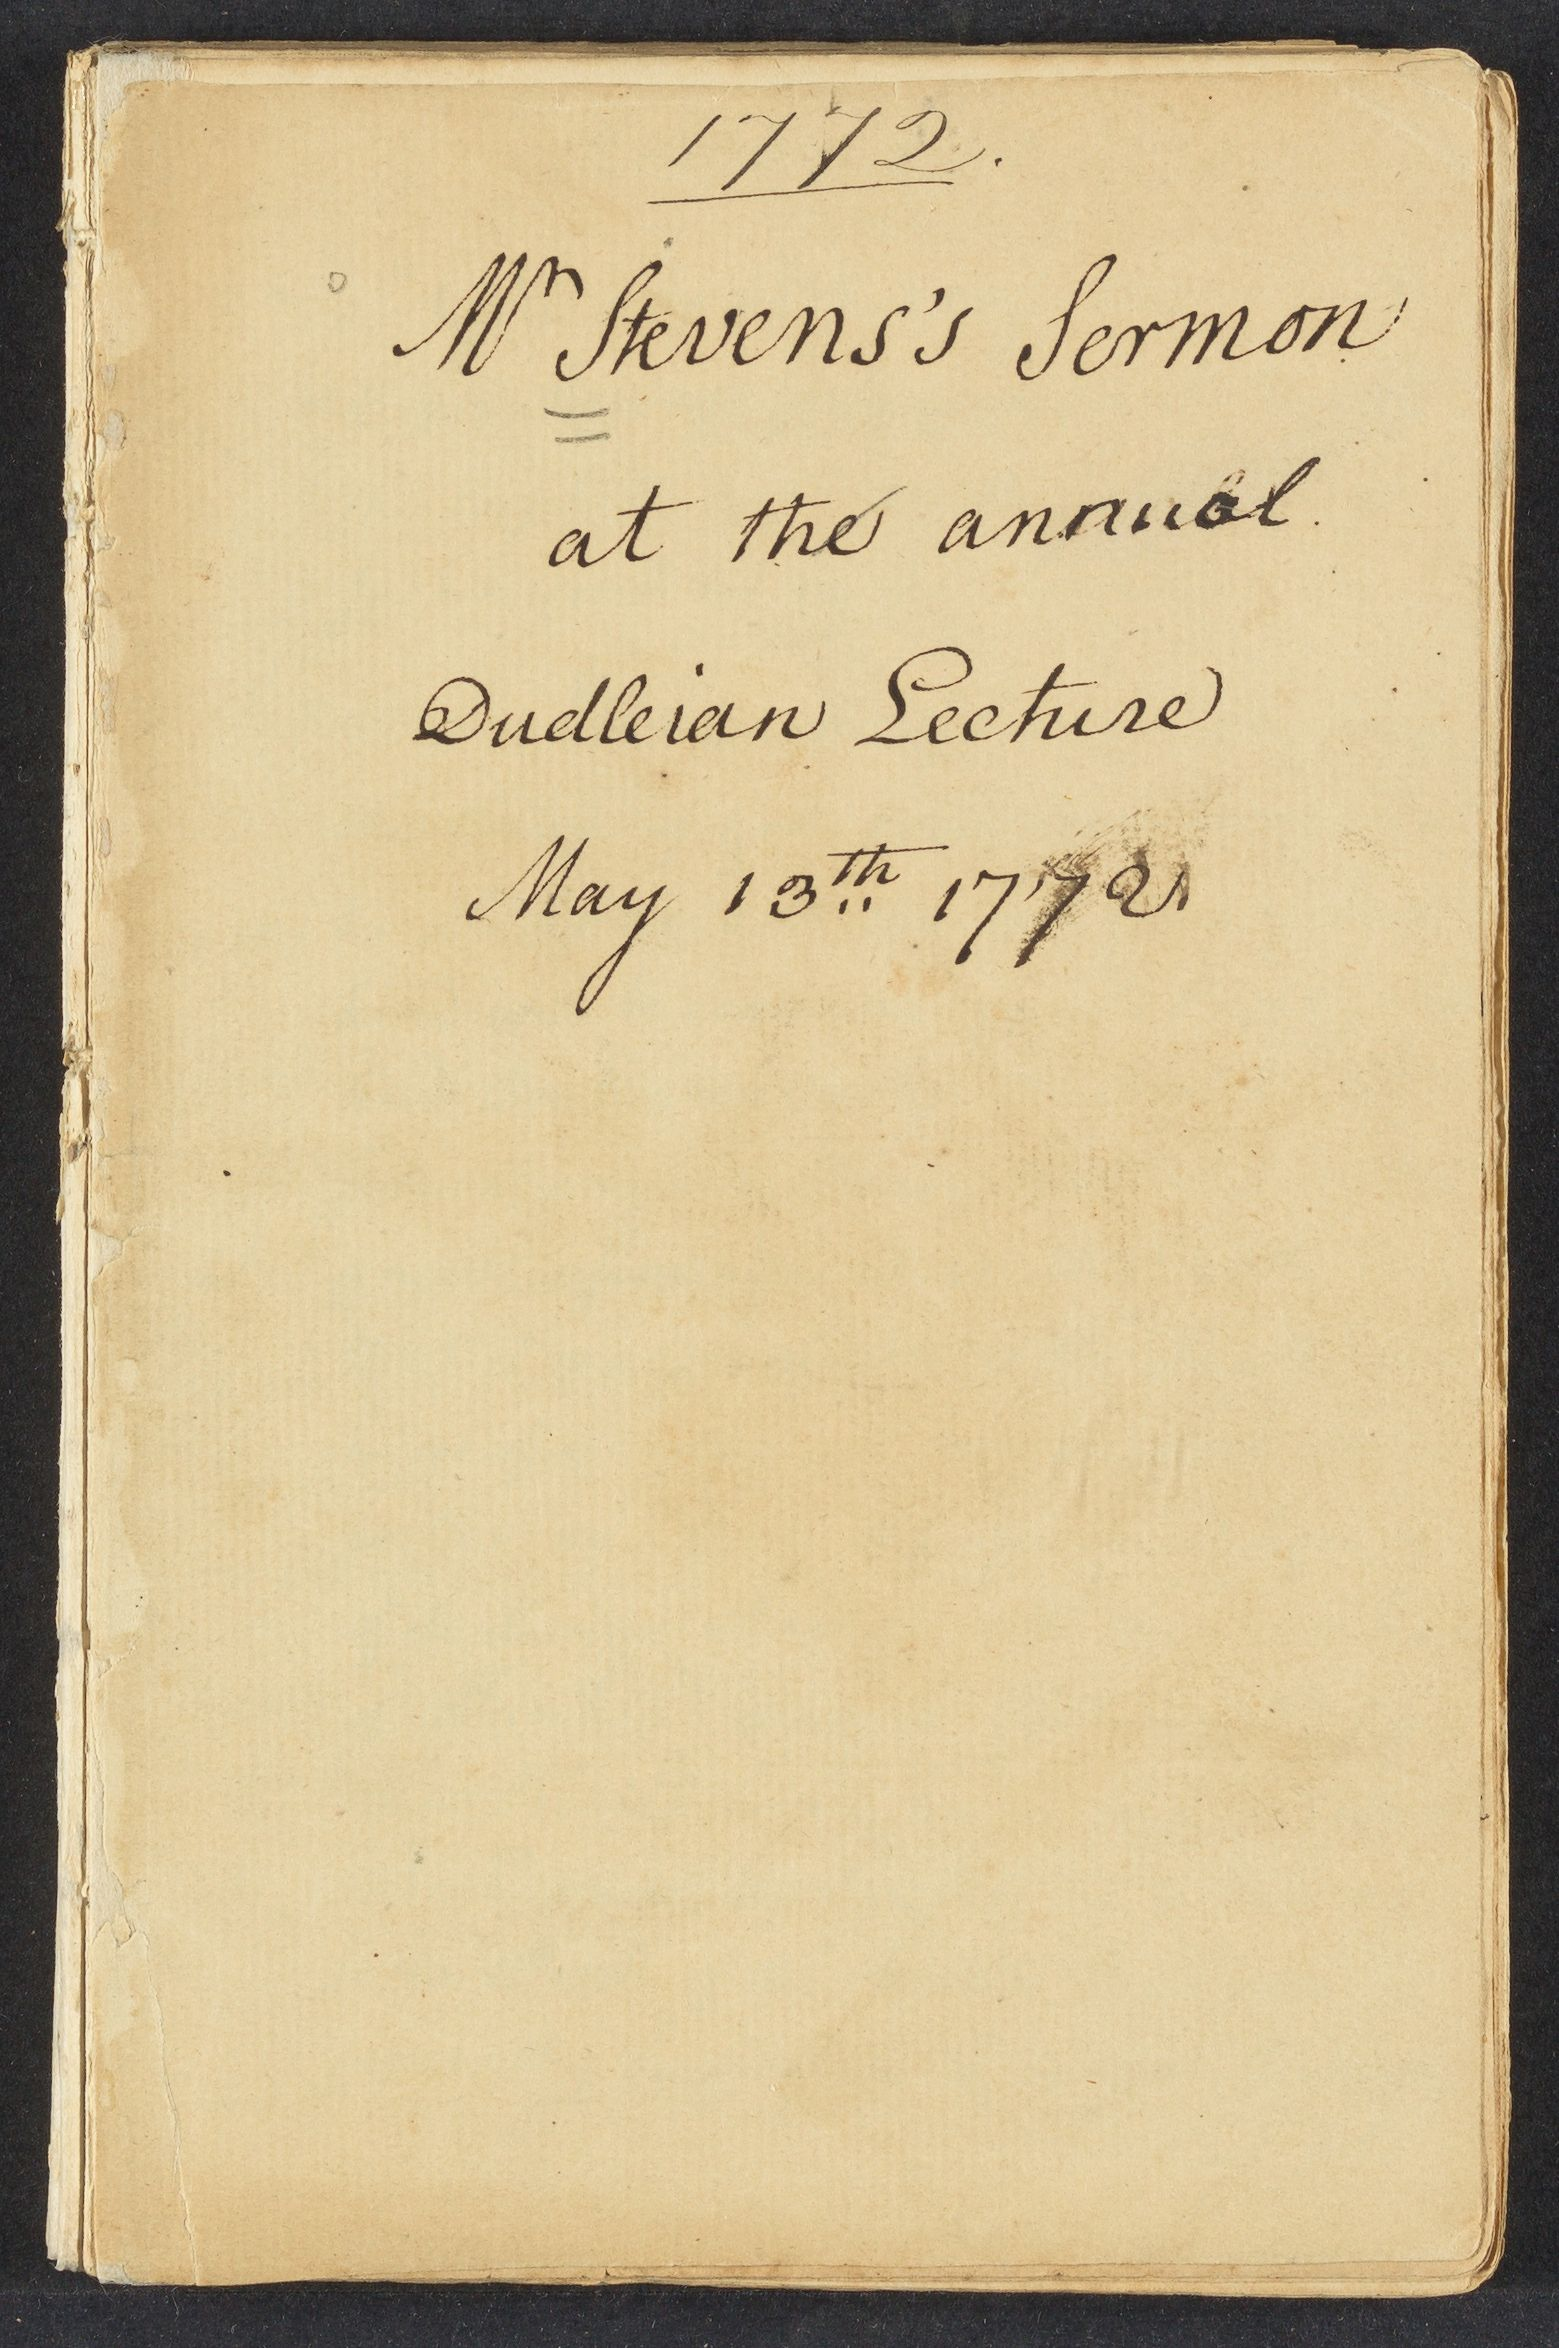 Sermon at the annual Dudleian lecture, May 13th, 1772